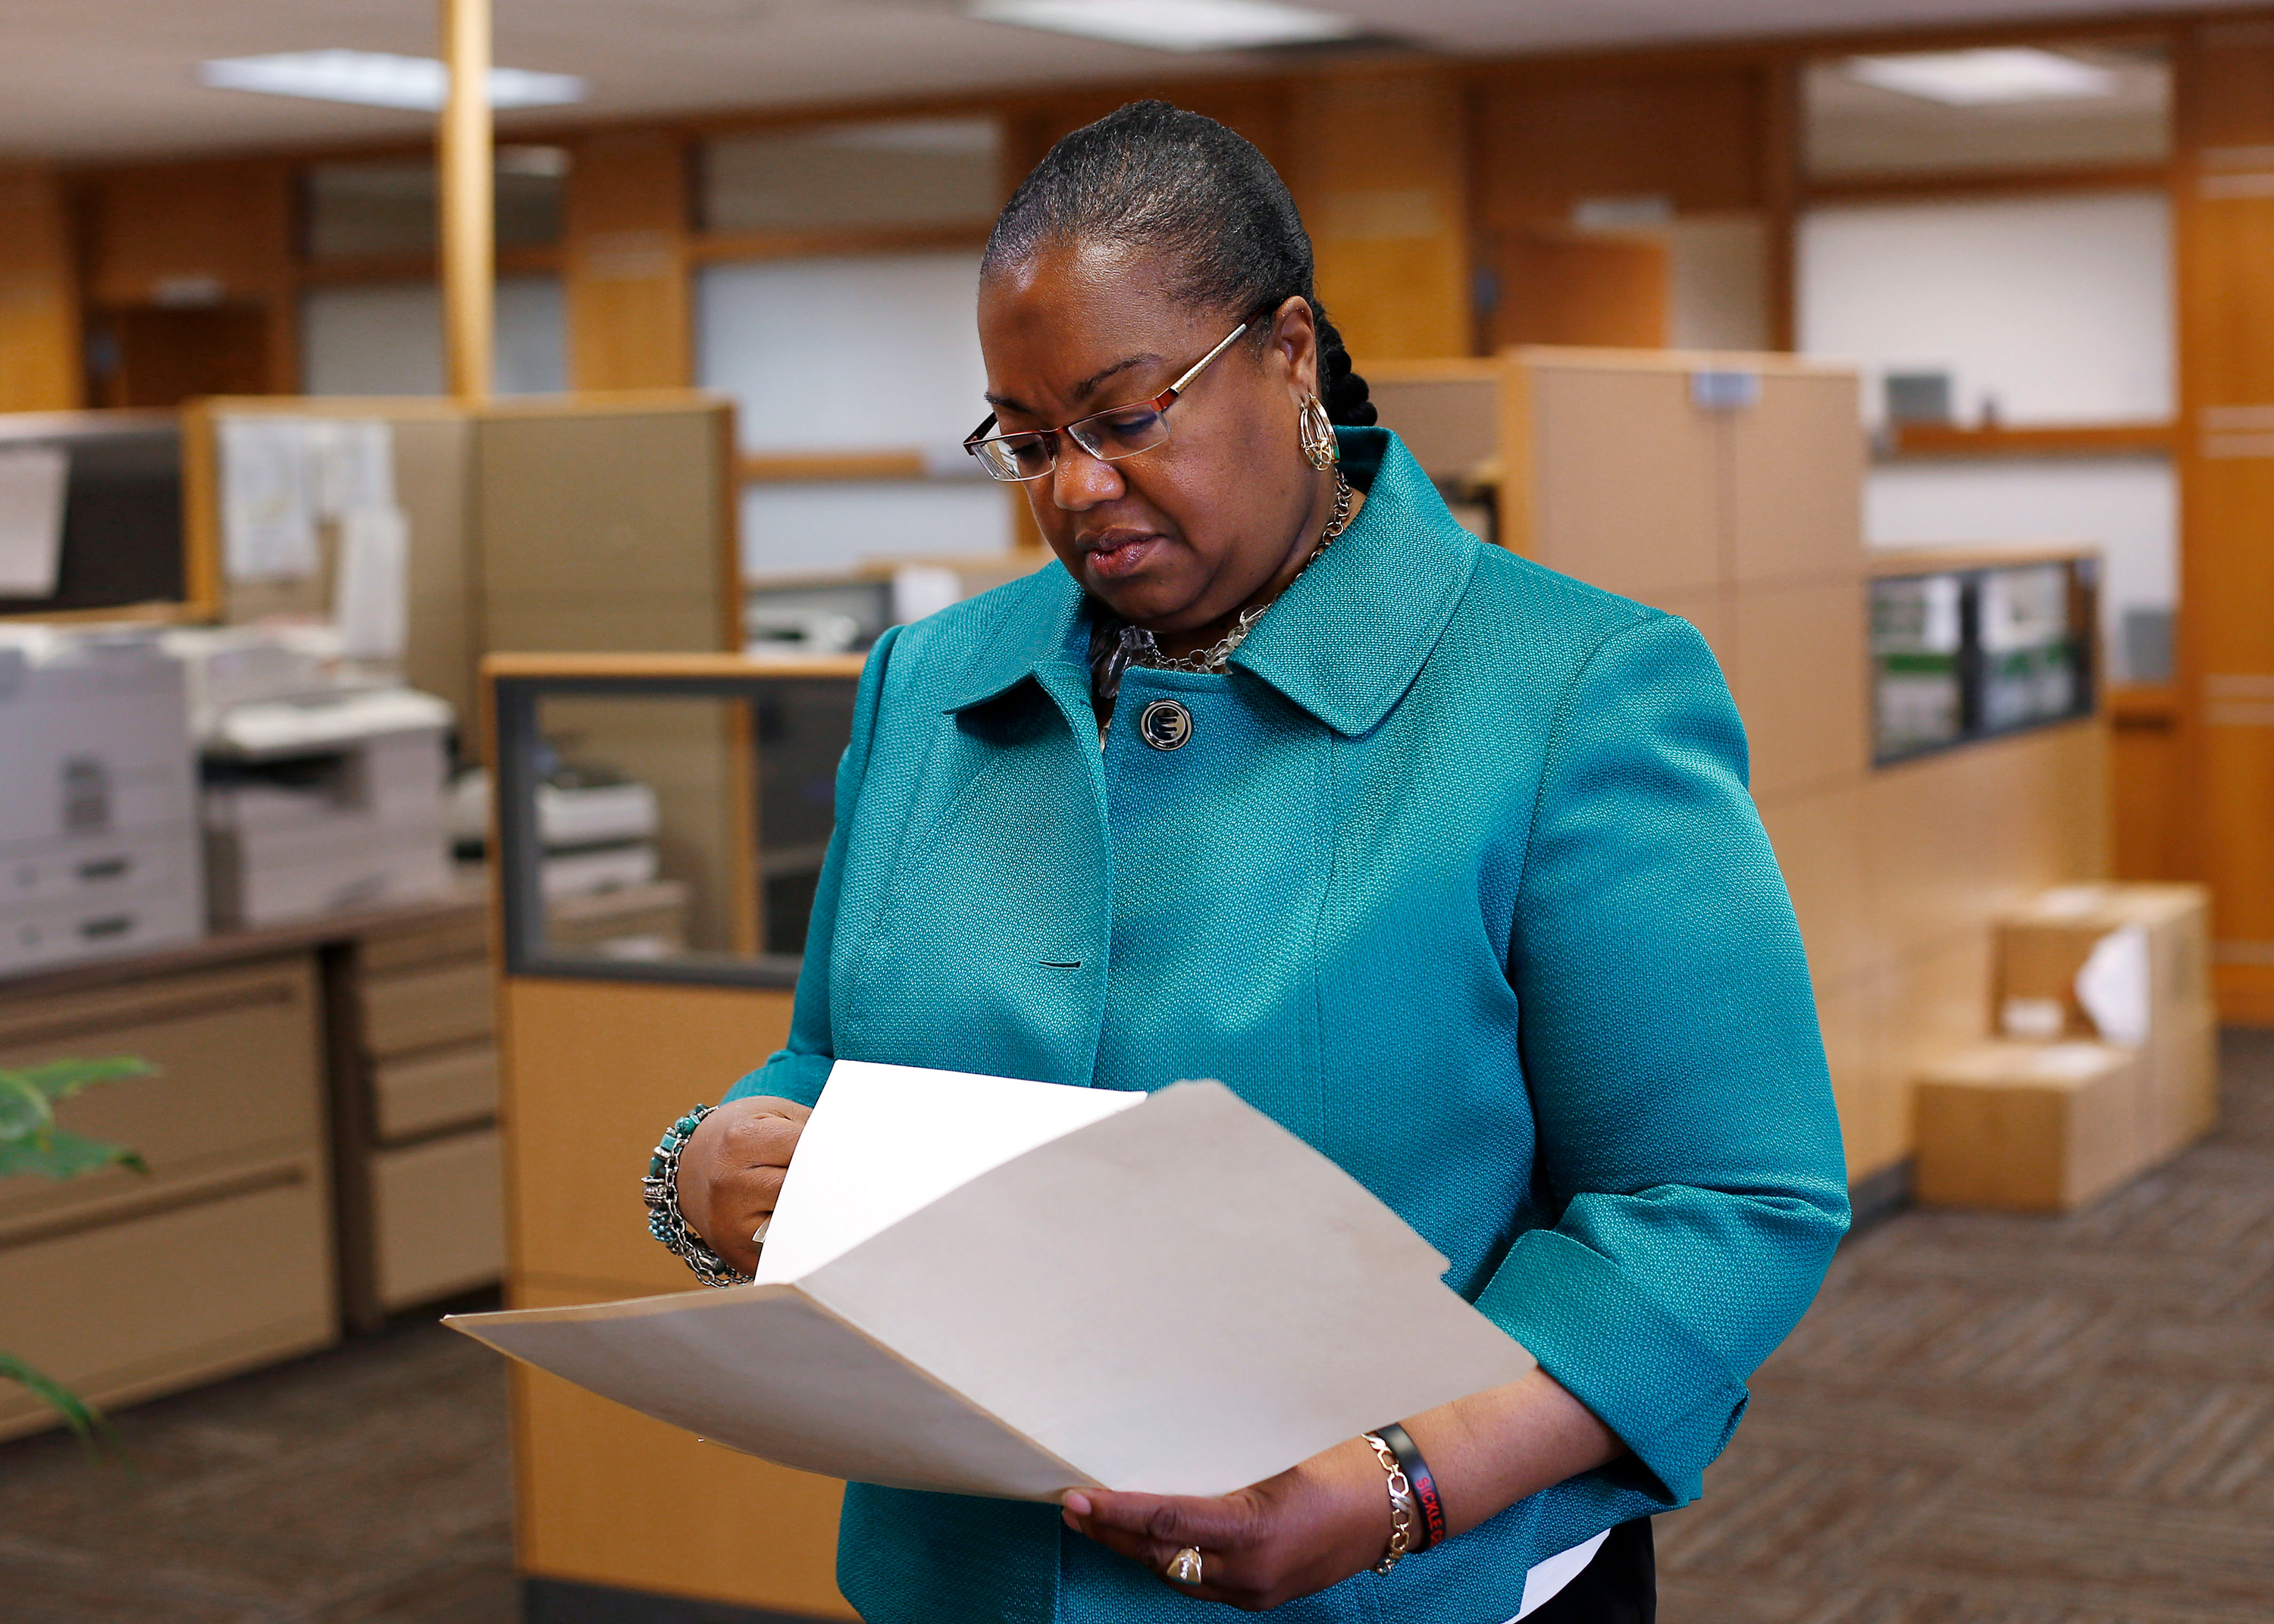 Wayne County Prosecutor Kym Worthy checks papers in Detroit Monday, April 20, 2015. (AP Photo/Paul Sancya)